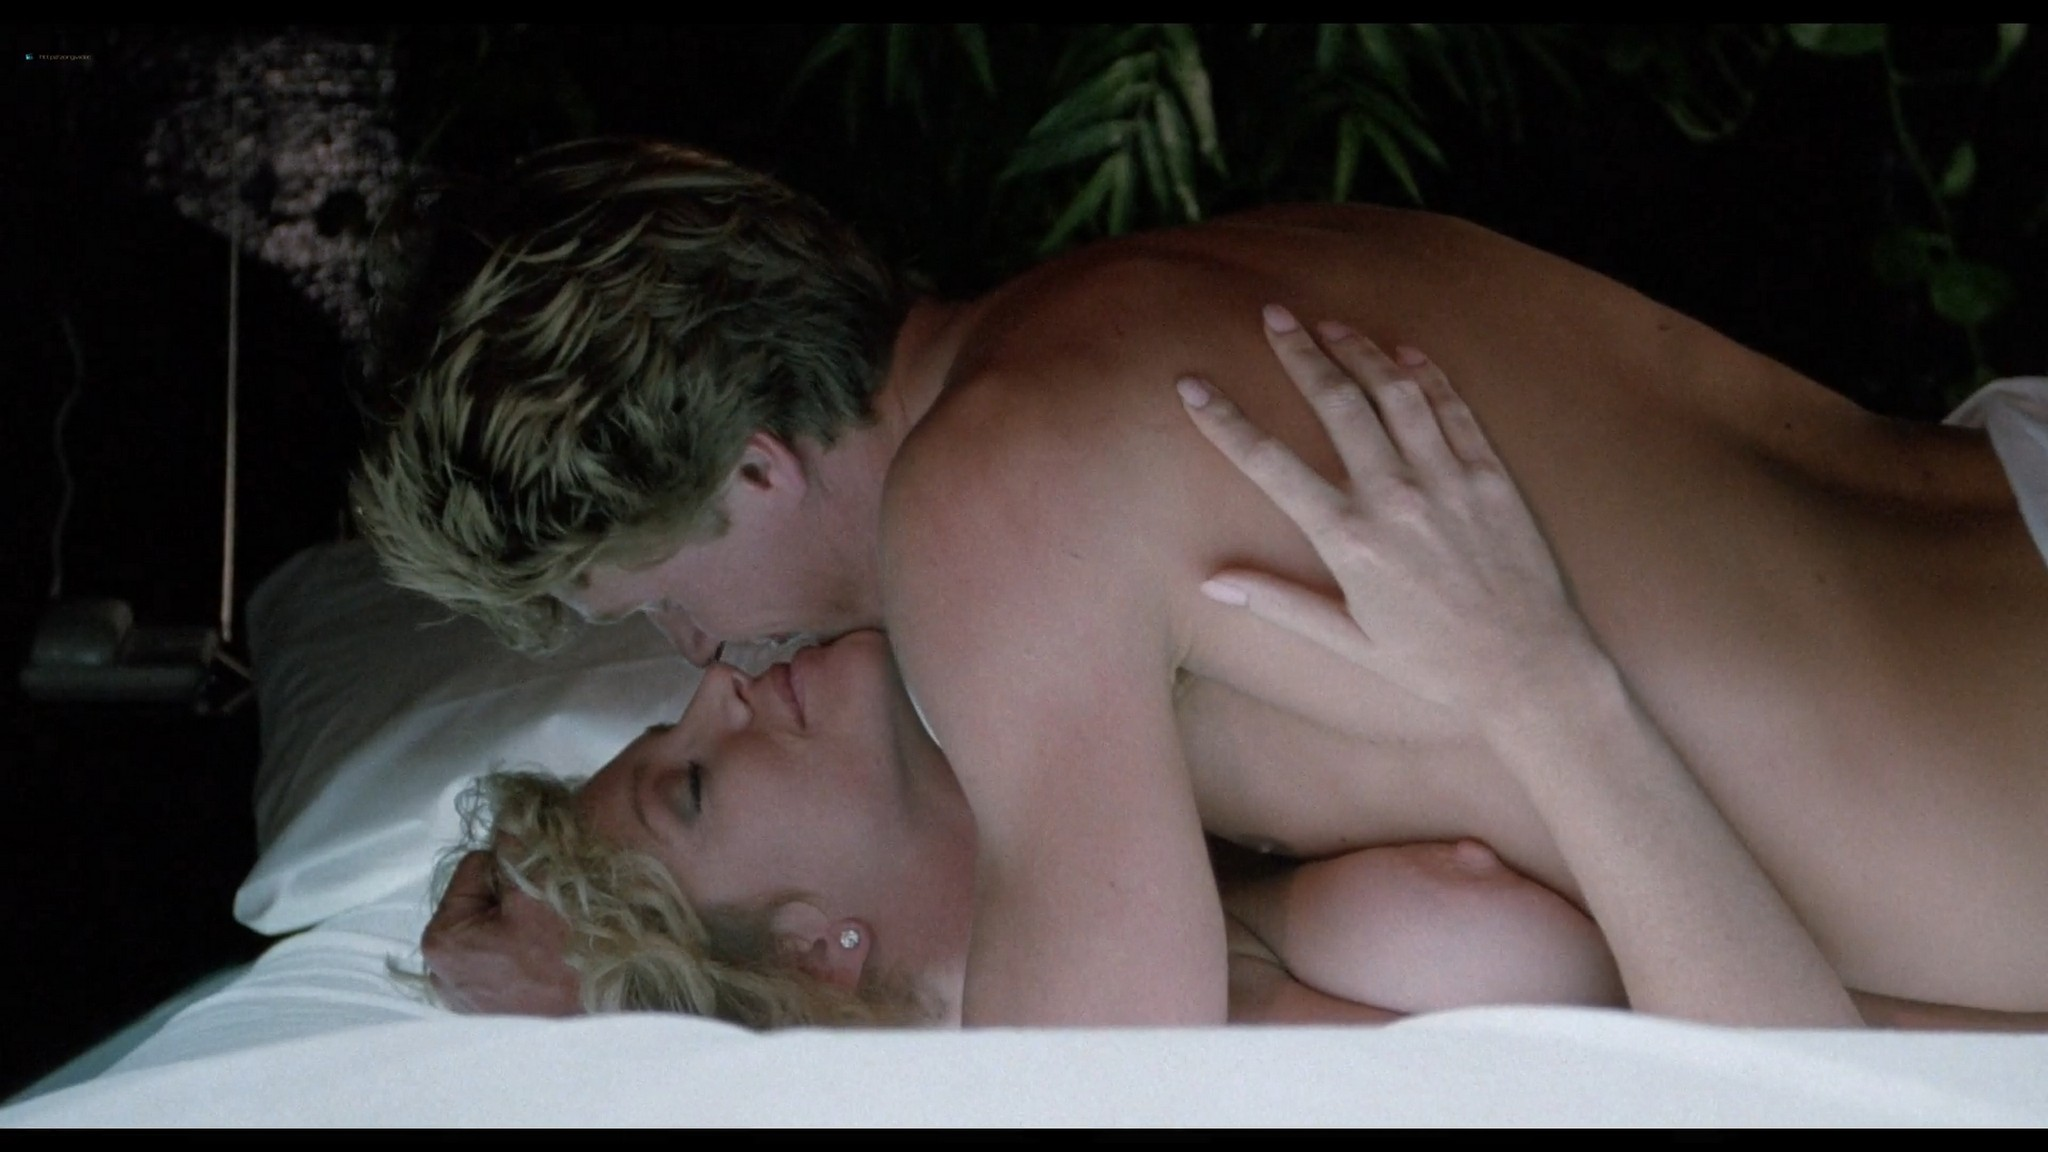 Shannon Tweed nude sex Adrienne Sachs nude sex in the shower In the Cold of the Night 1989 1080p BluRay 5